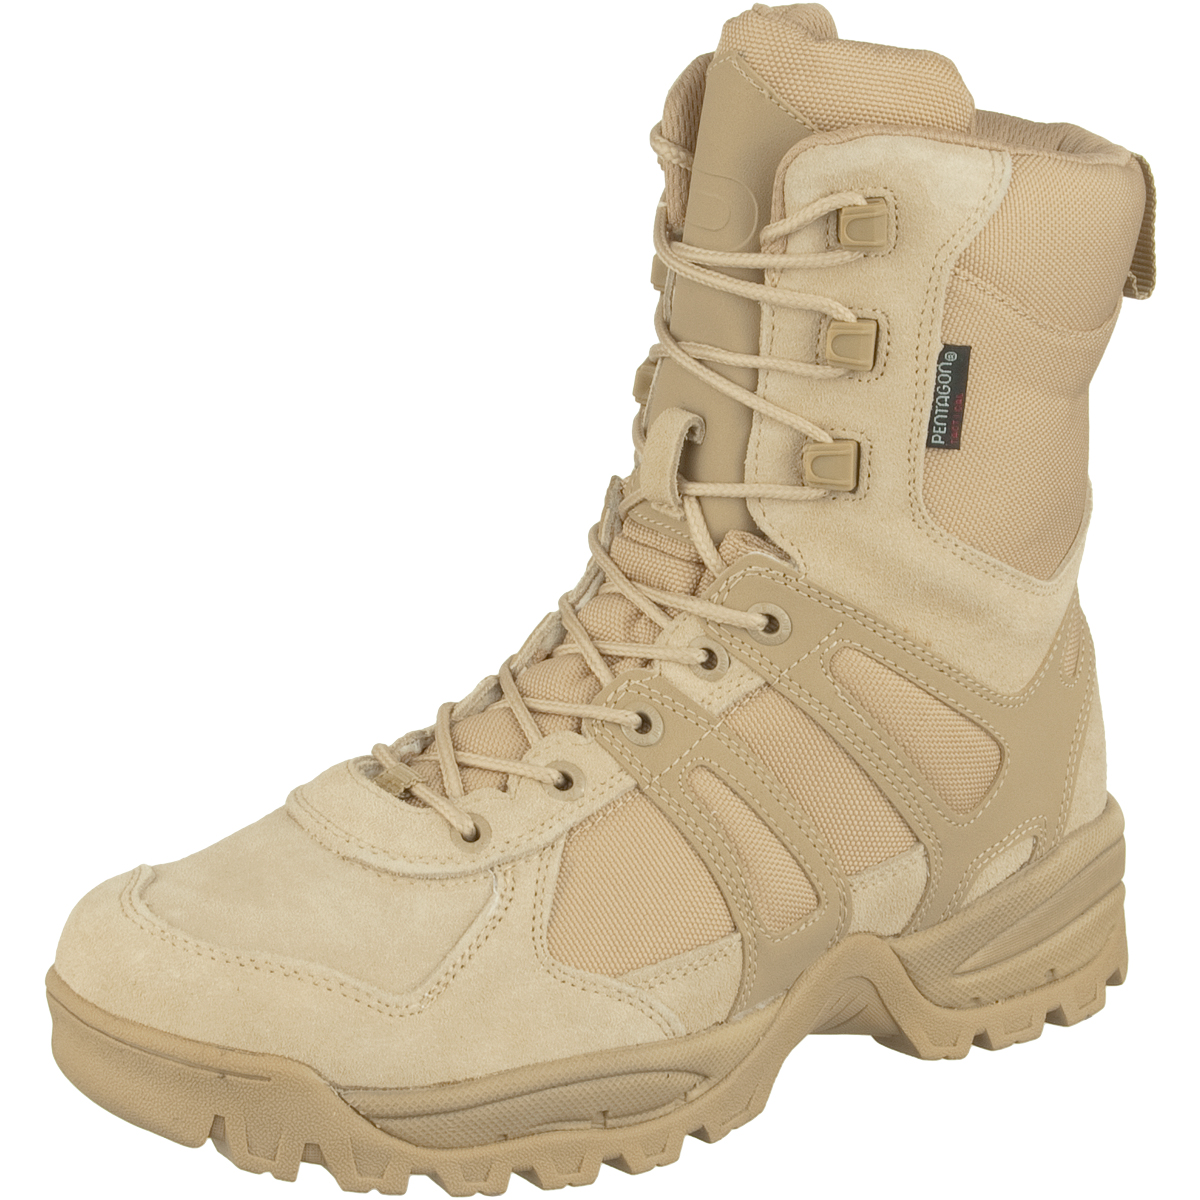 Molto Pentagon Scorpion Desert Boots Tactical Military Duty Patrol Mens  PO23